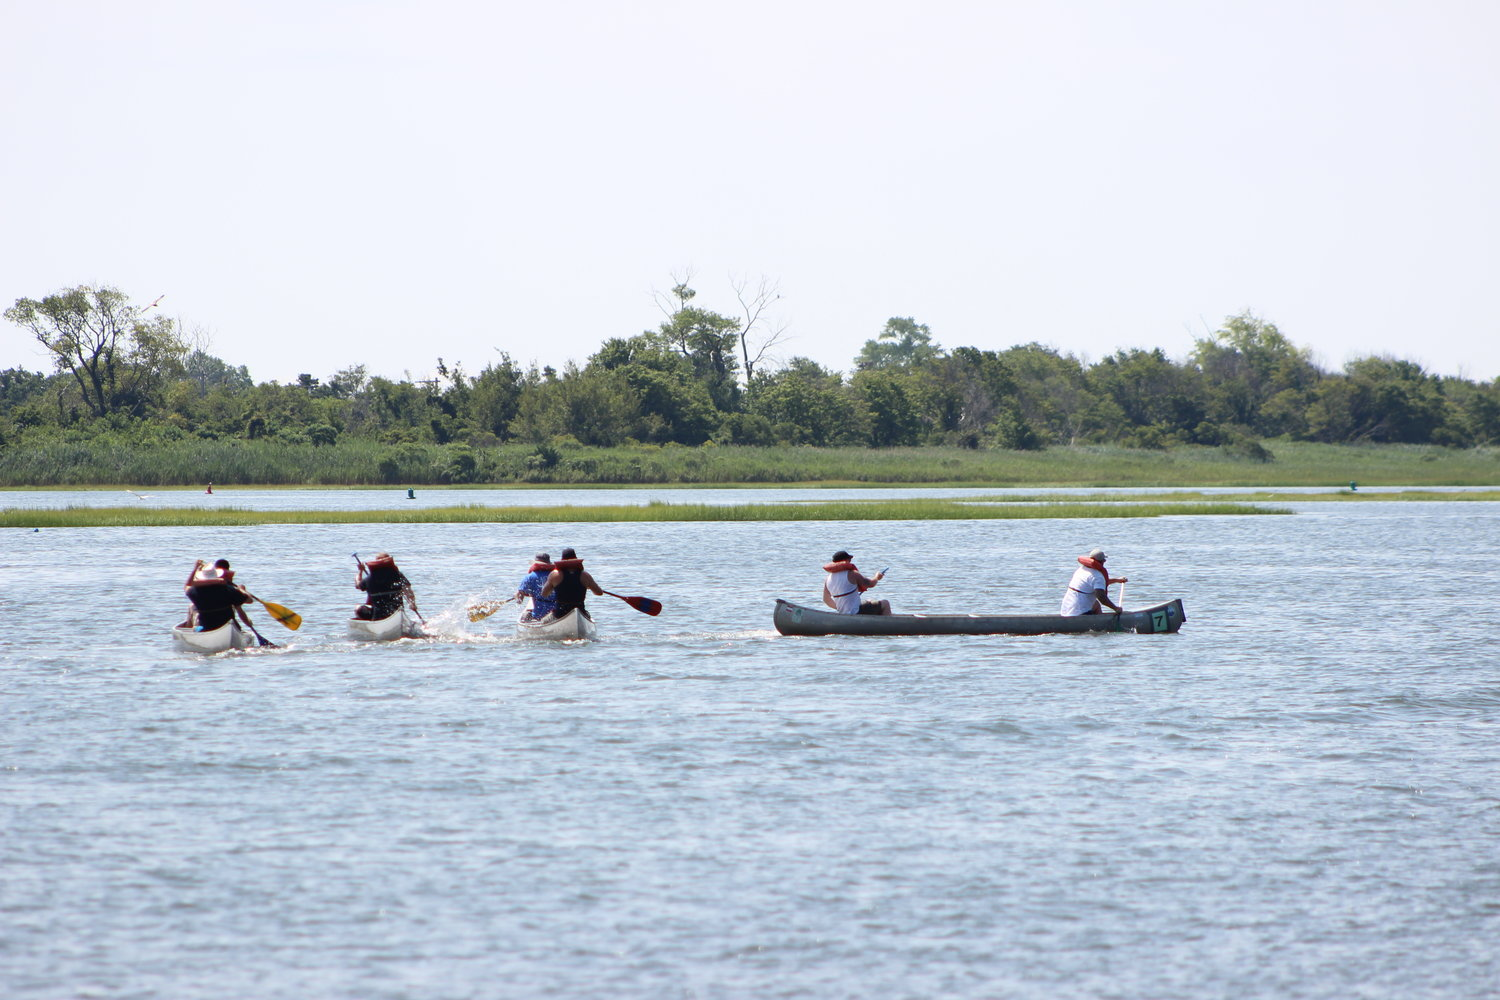 A canoe race competitors vie for first place medals during a morning race.